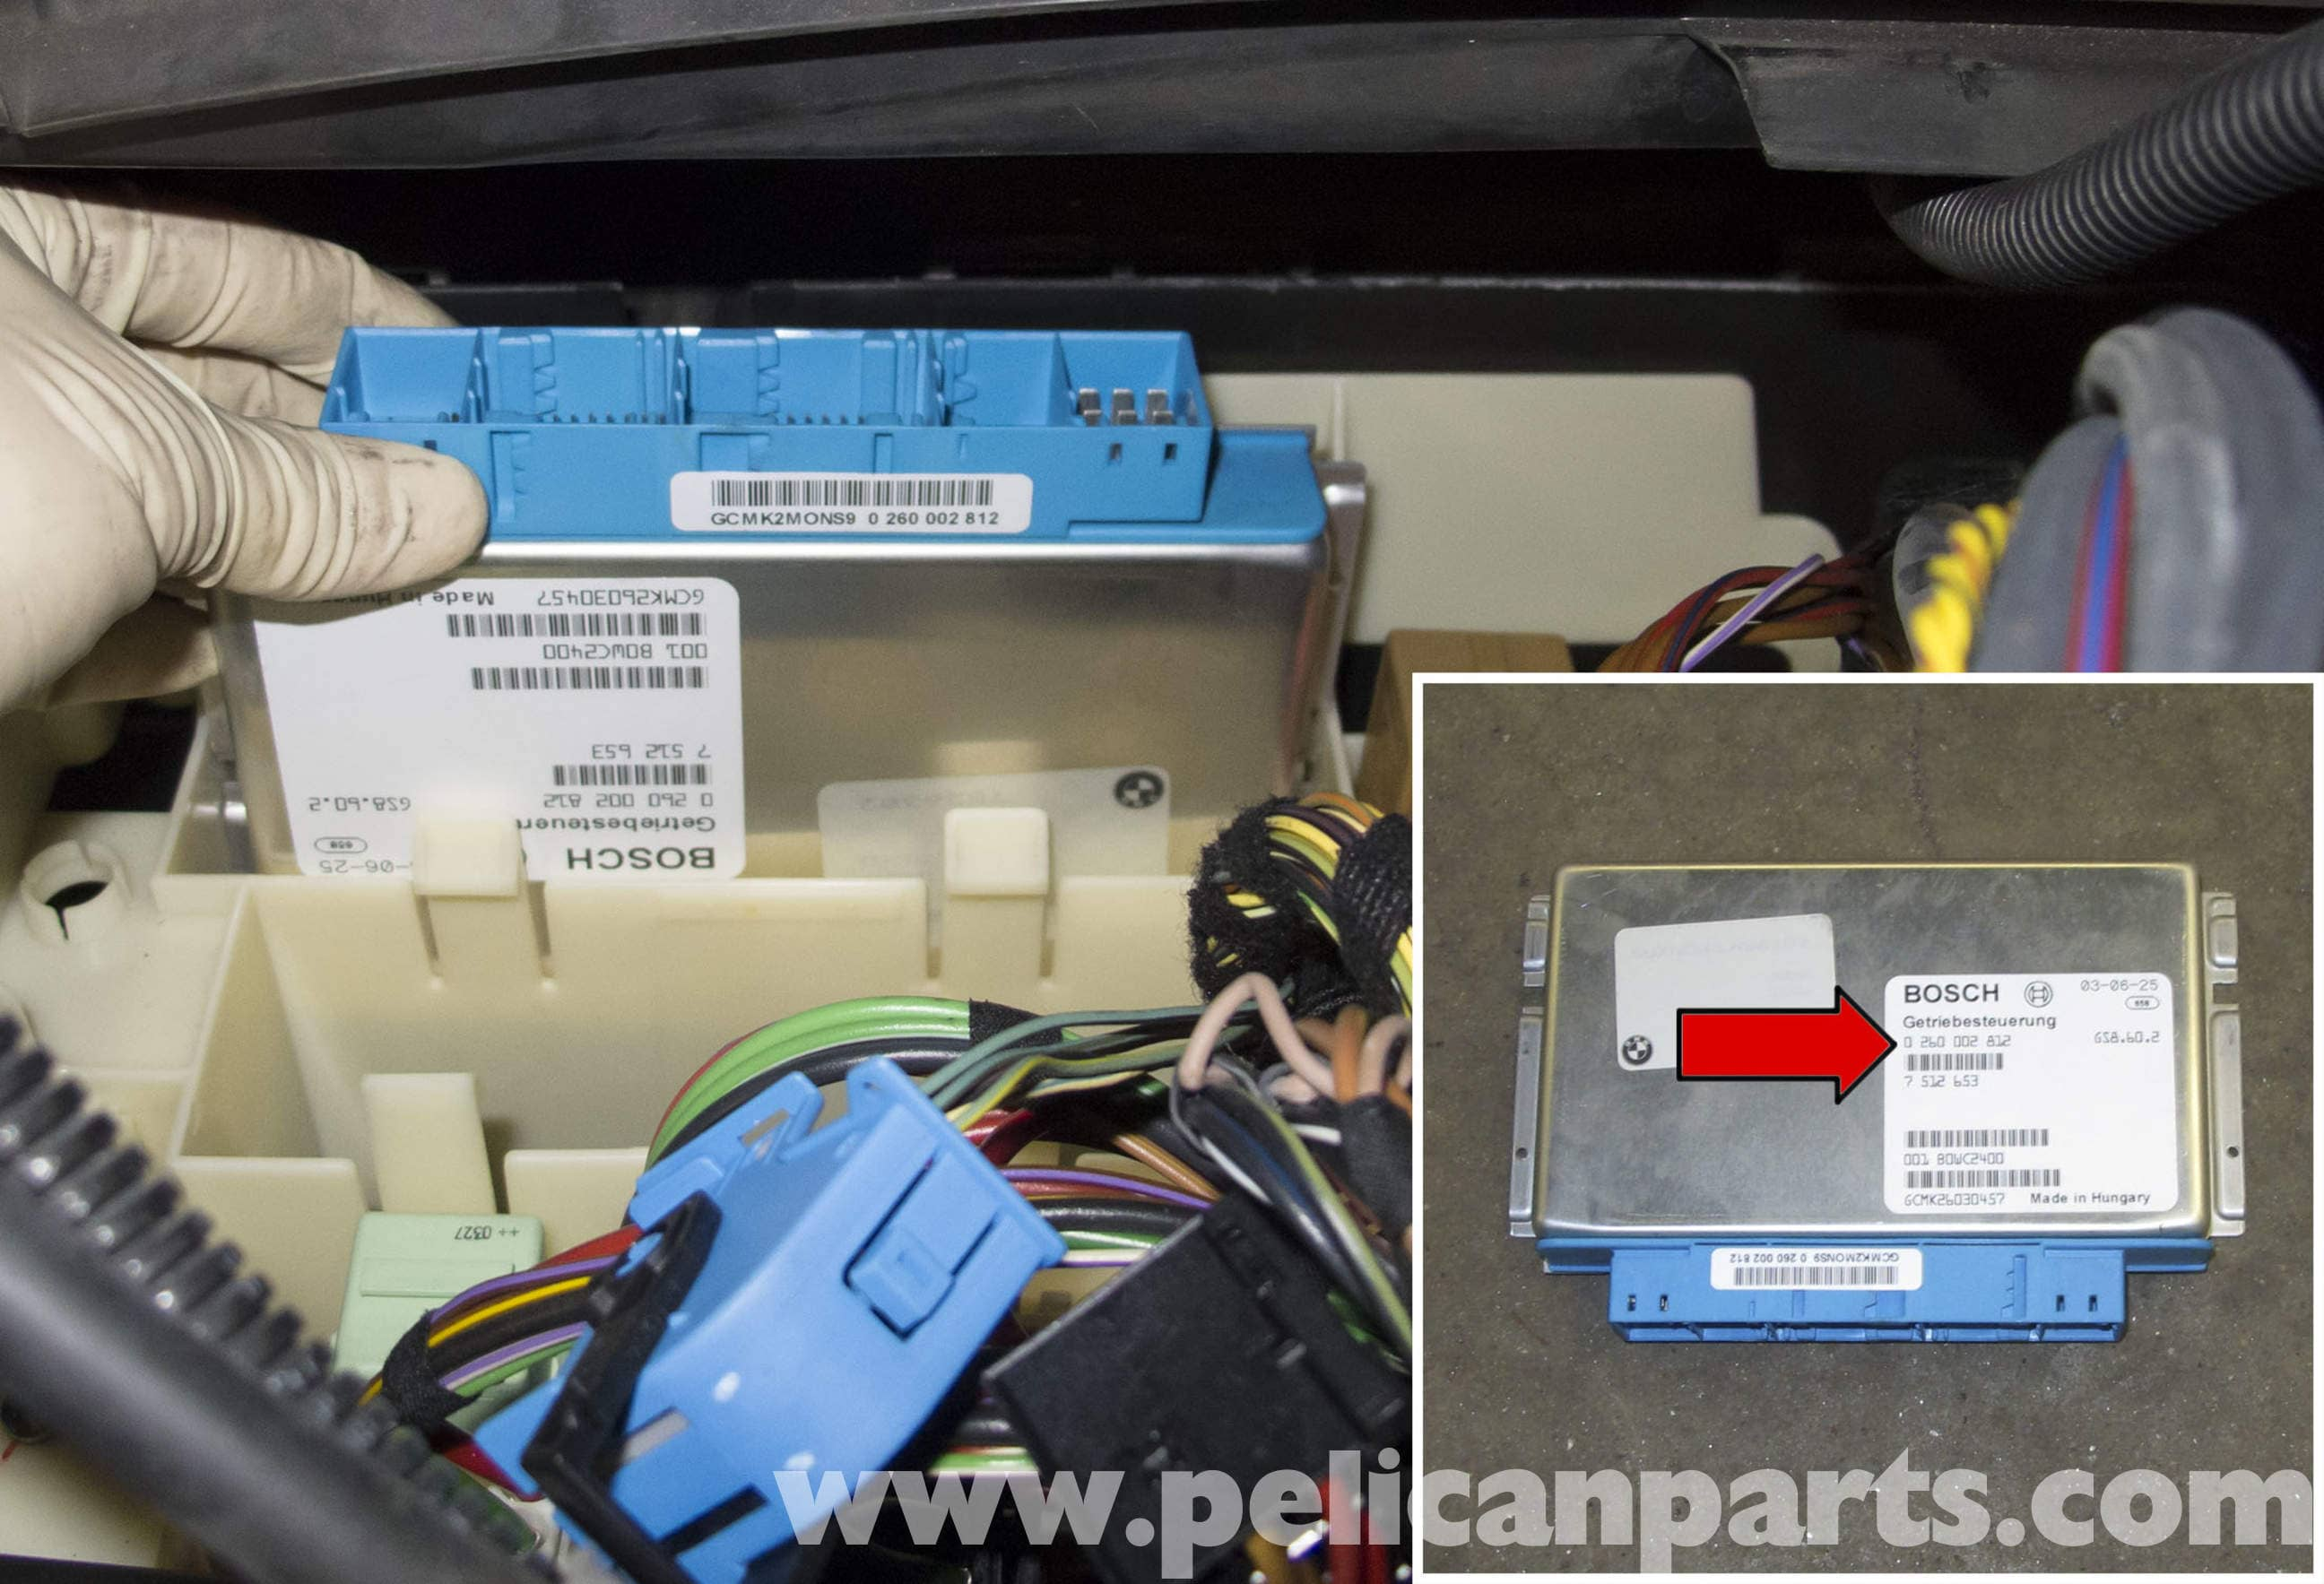 2007 bmw x3 wiring diagram bmw x3 wiring harness bmw x5 dme and tcm replacement e53 2000 2006 pelican #8